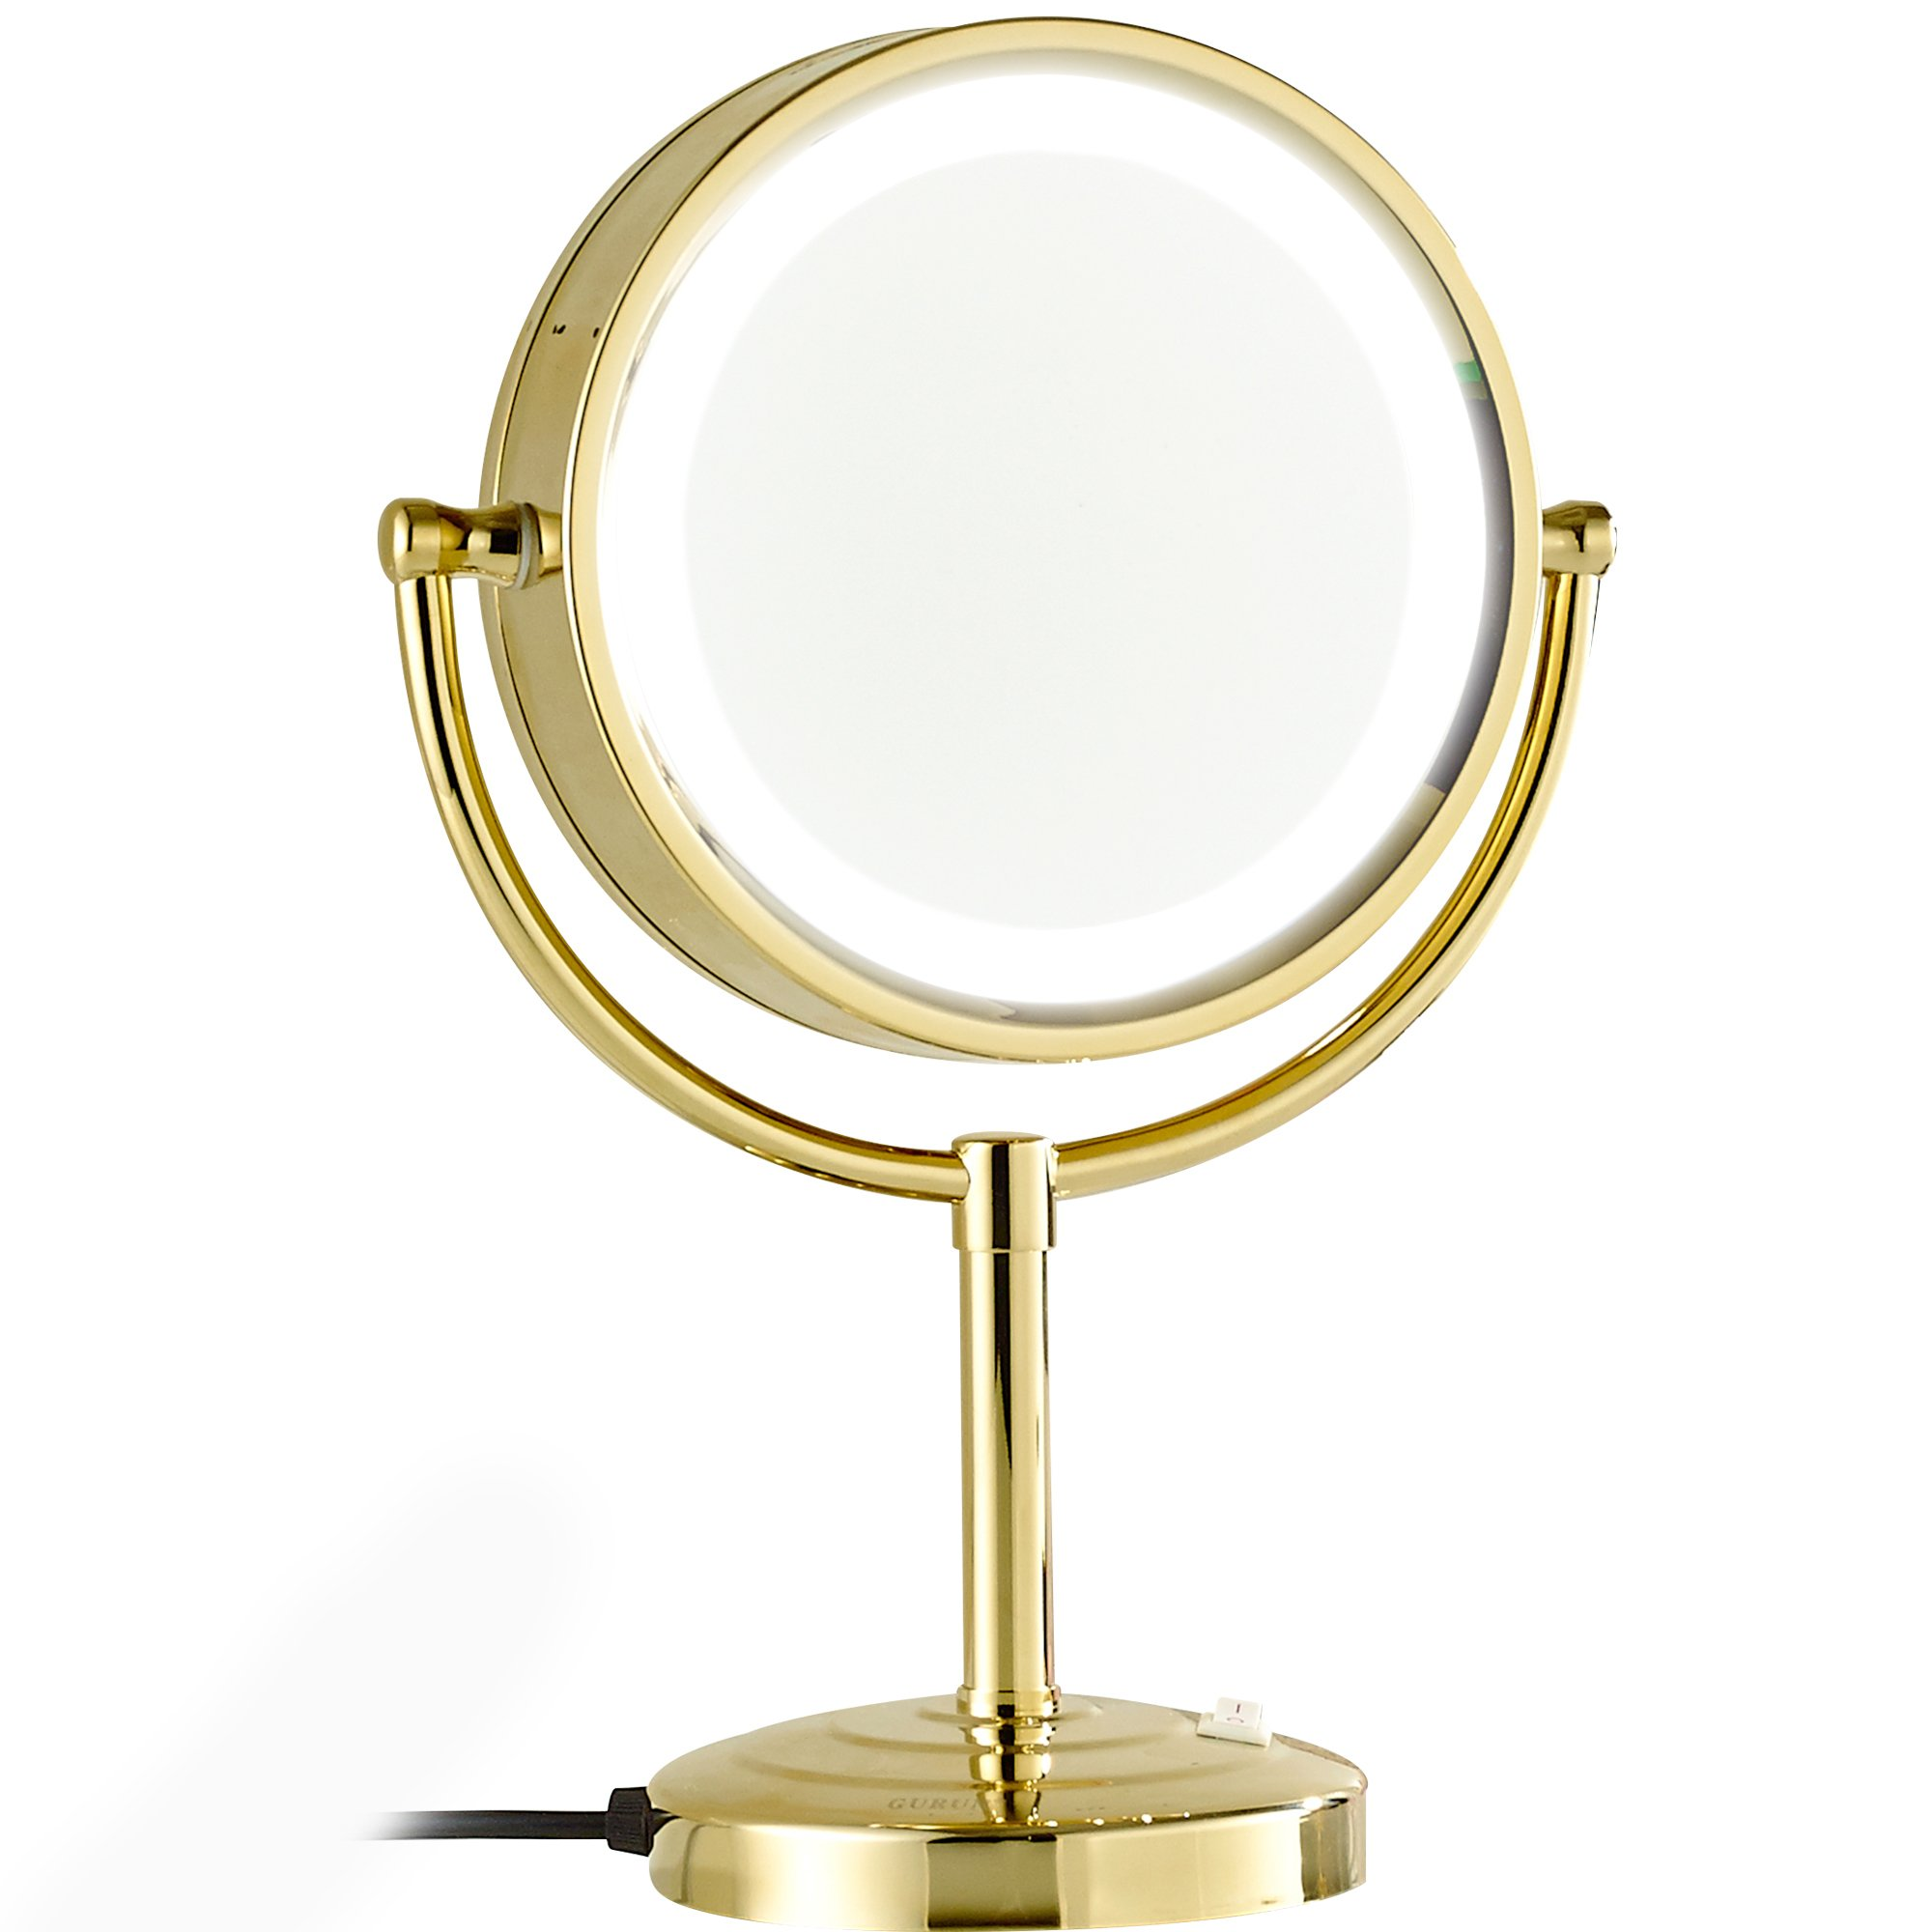 GURUN 8.5-Inch Tabletop Double-Sided LED Lighted Make-up Mirror with 10x Magnification,Gold Finish M2208DJ(8.5in,10x)